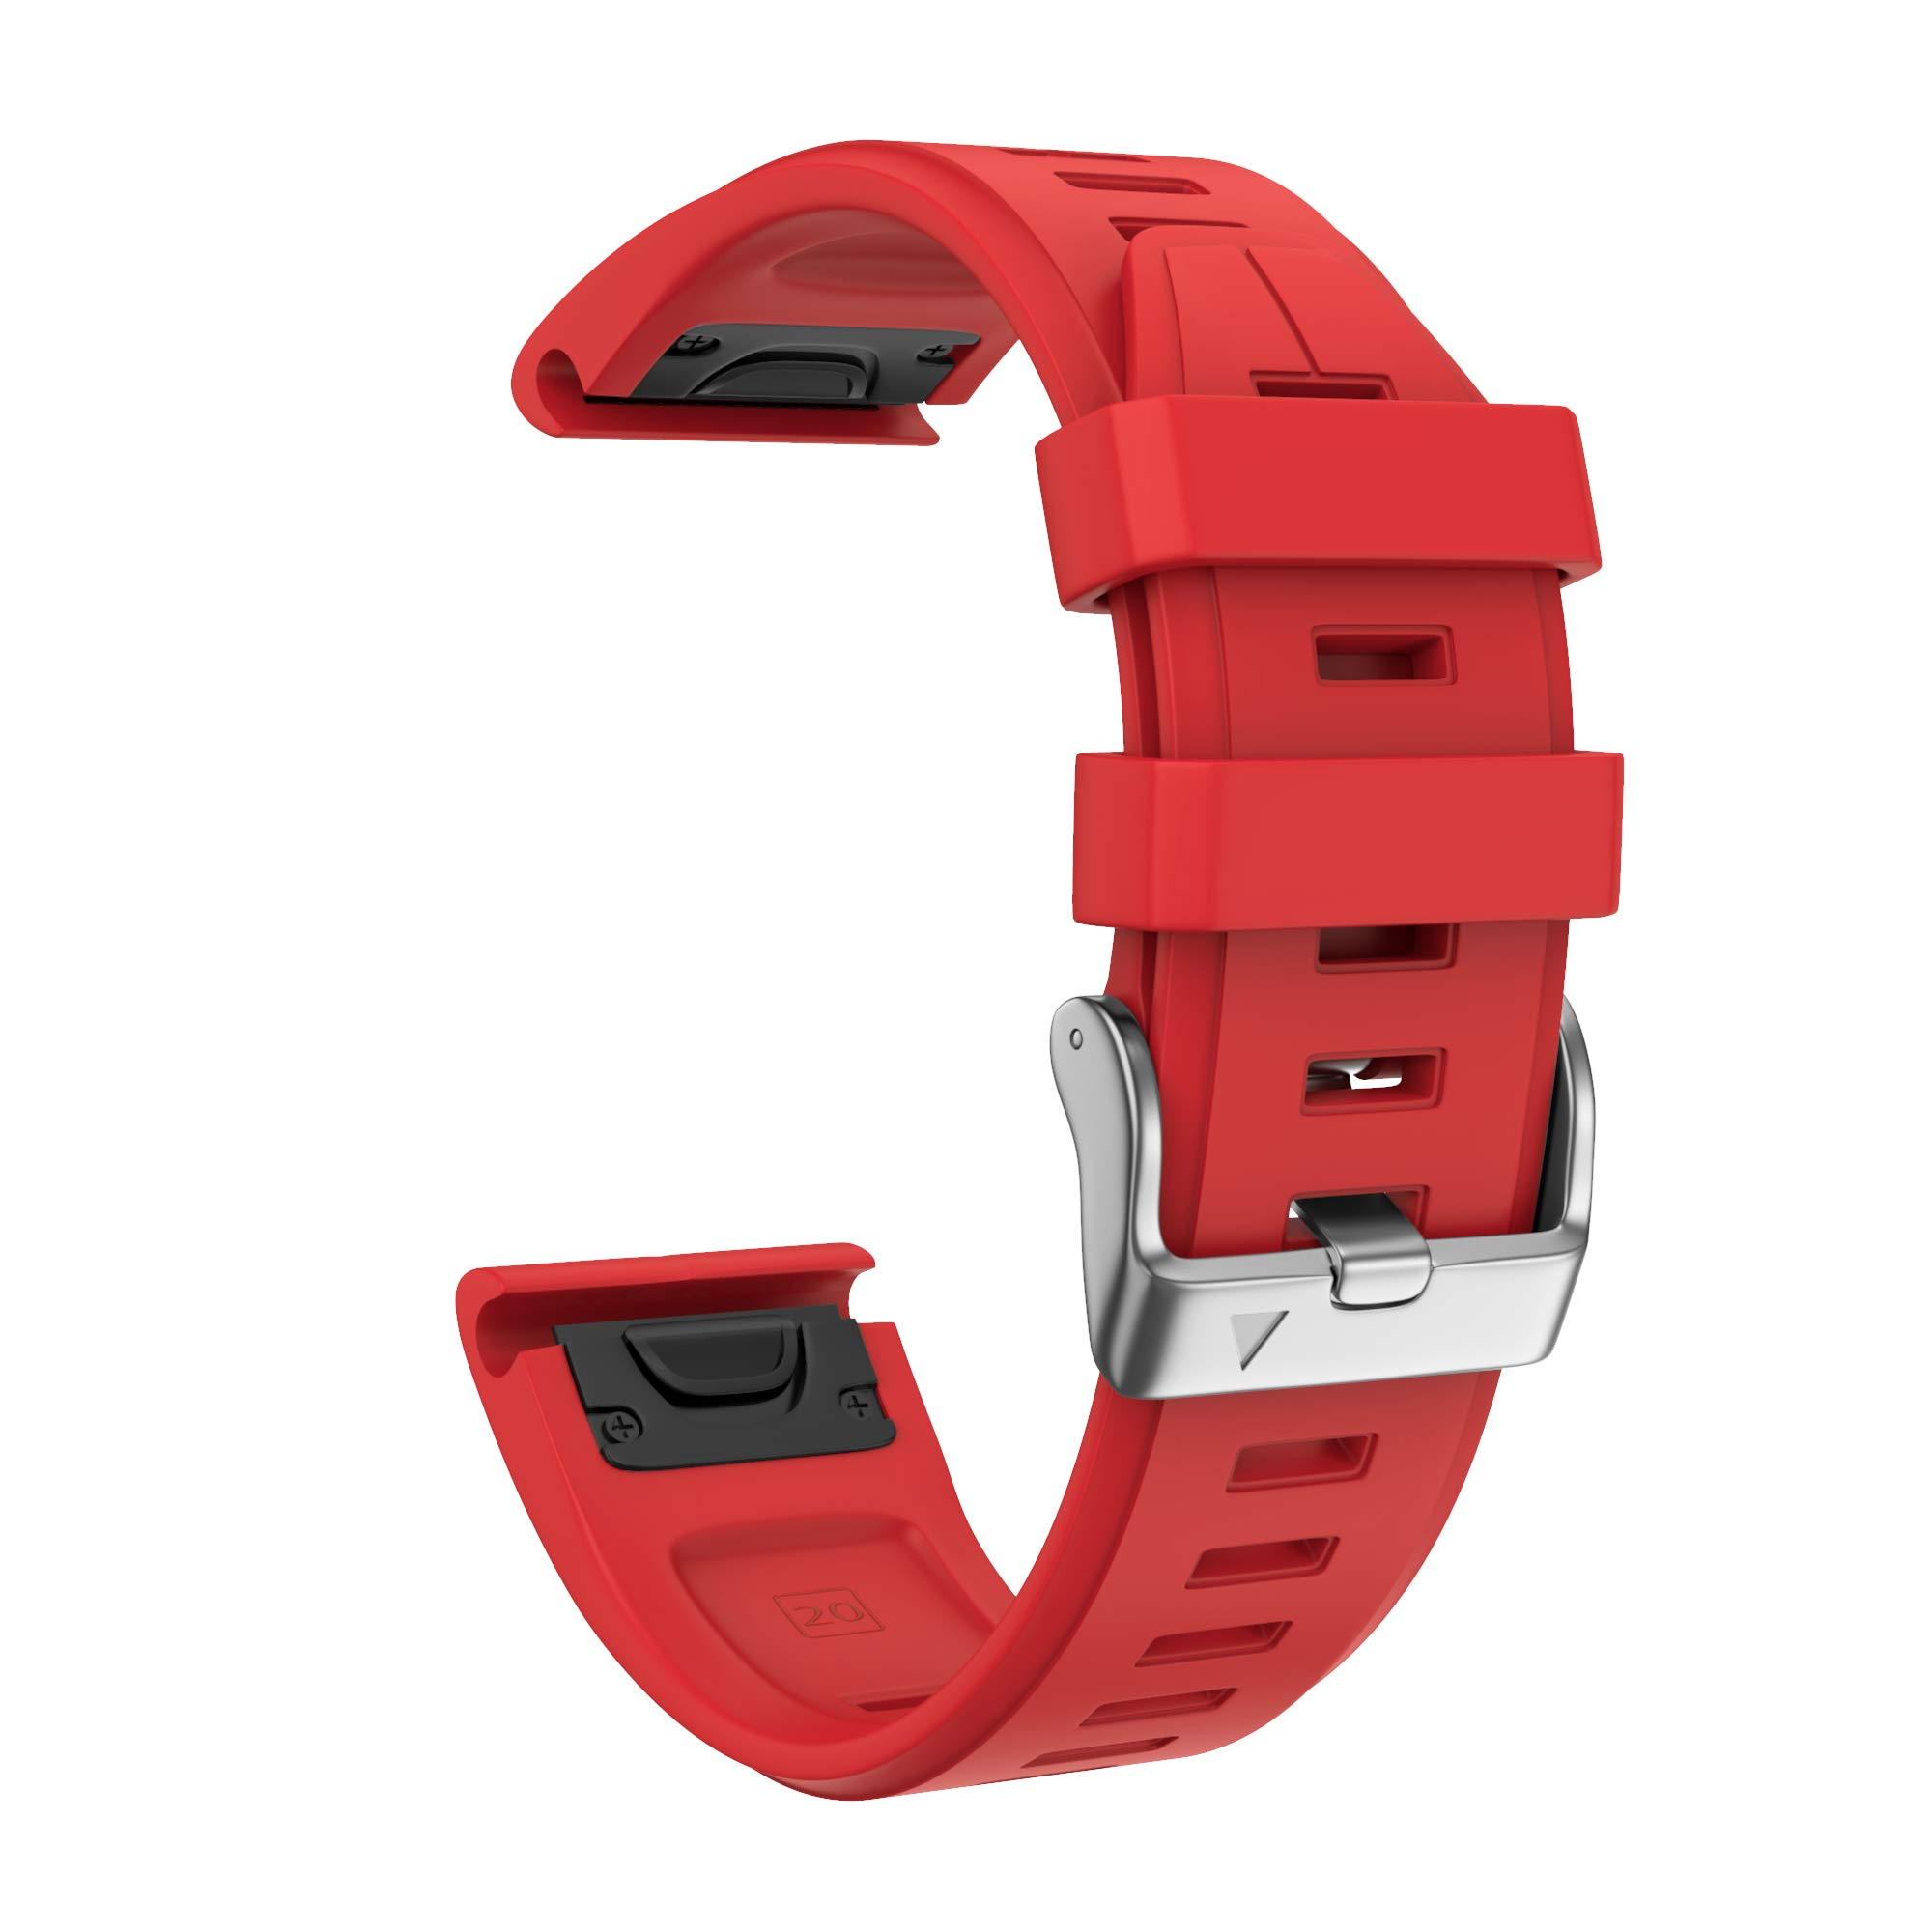 ANCOOL Compatible with Fenix 5S Plus Bands 20mm Width Easy Fit Soft Silicone Watch Bands Replacement for Fenix 6S/Fenix 6S Pro/Fenix 5S Smartwatches, Red by ANCOOL